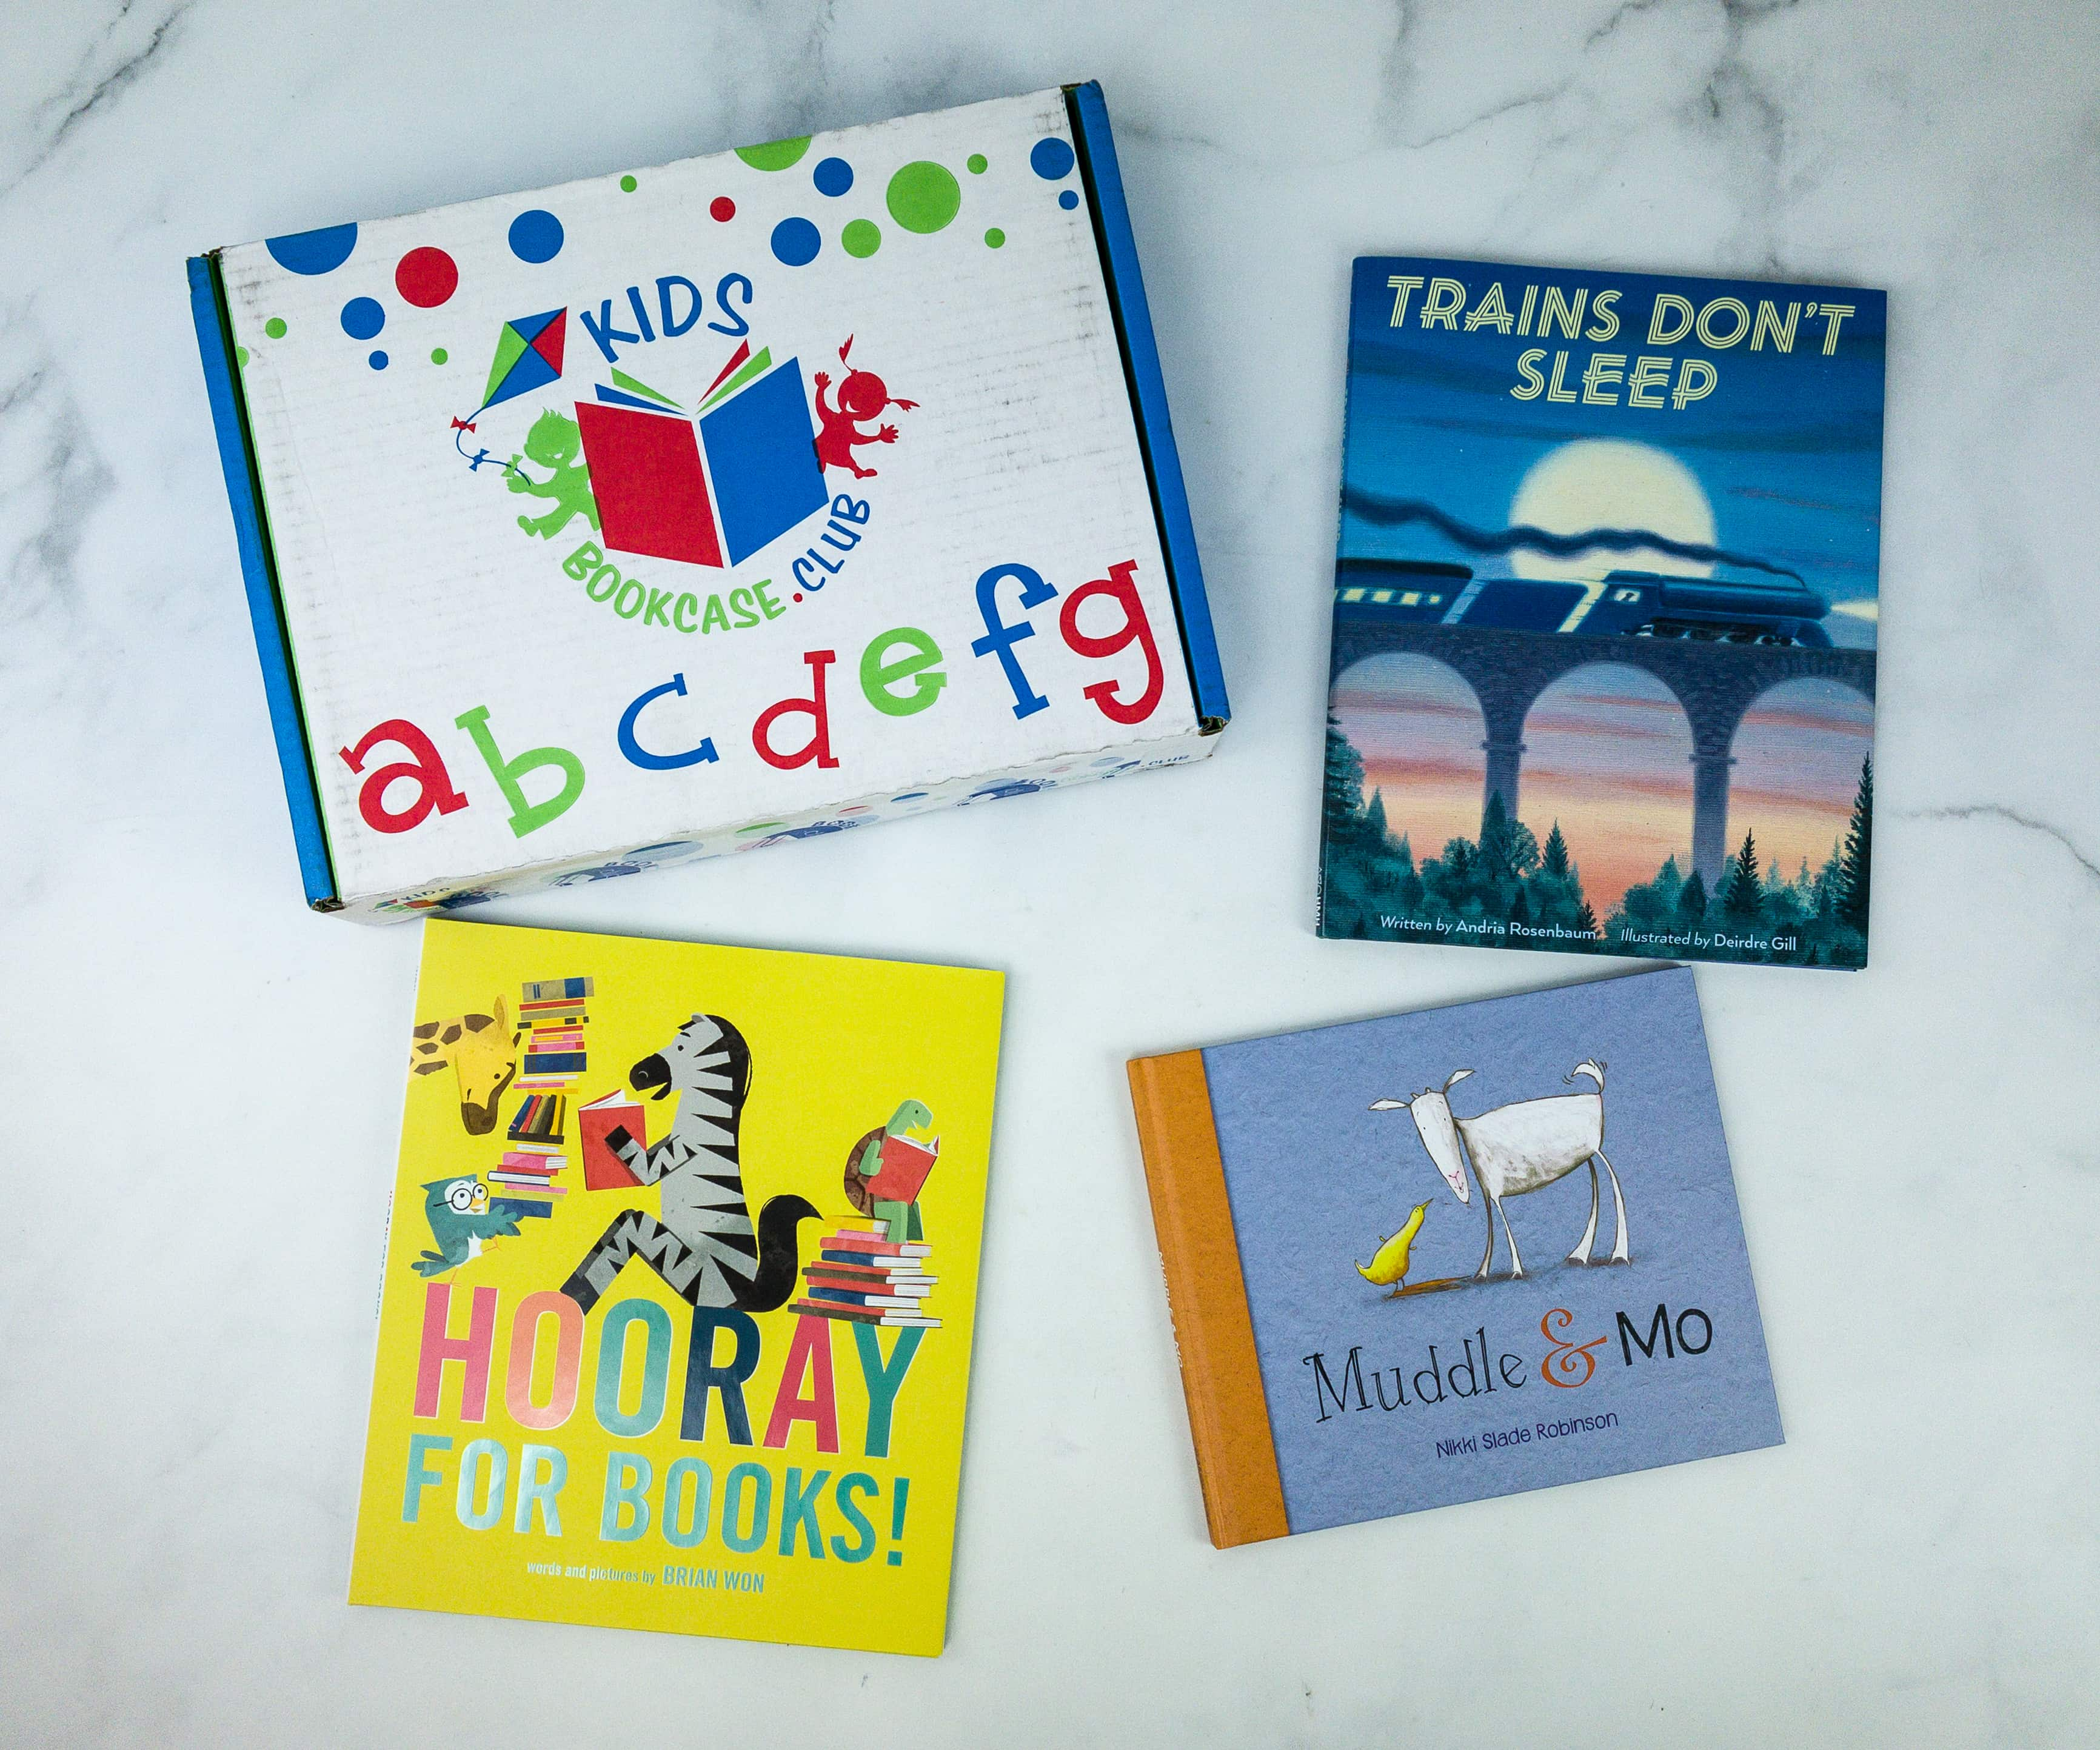 Kids BookCase Club October 2019 Subscription Box Review + 50% Off Coupon! 2-4 YEARS OLD